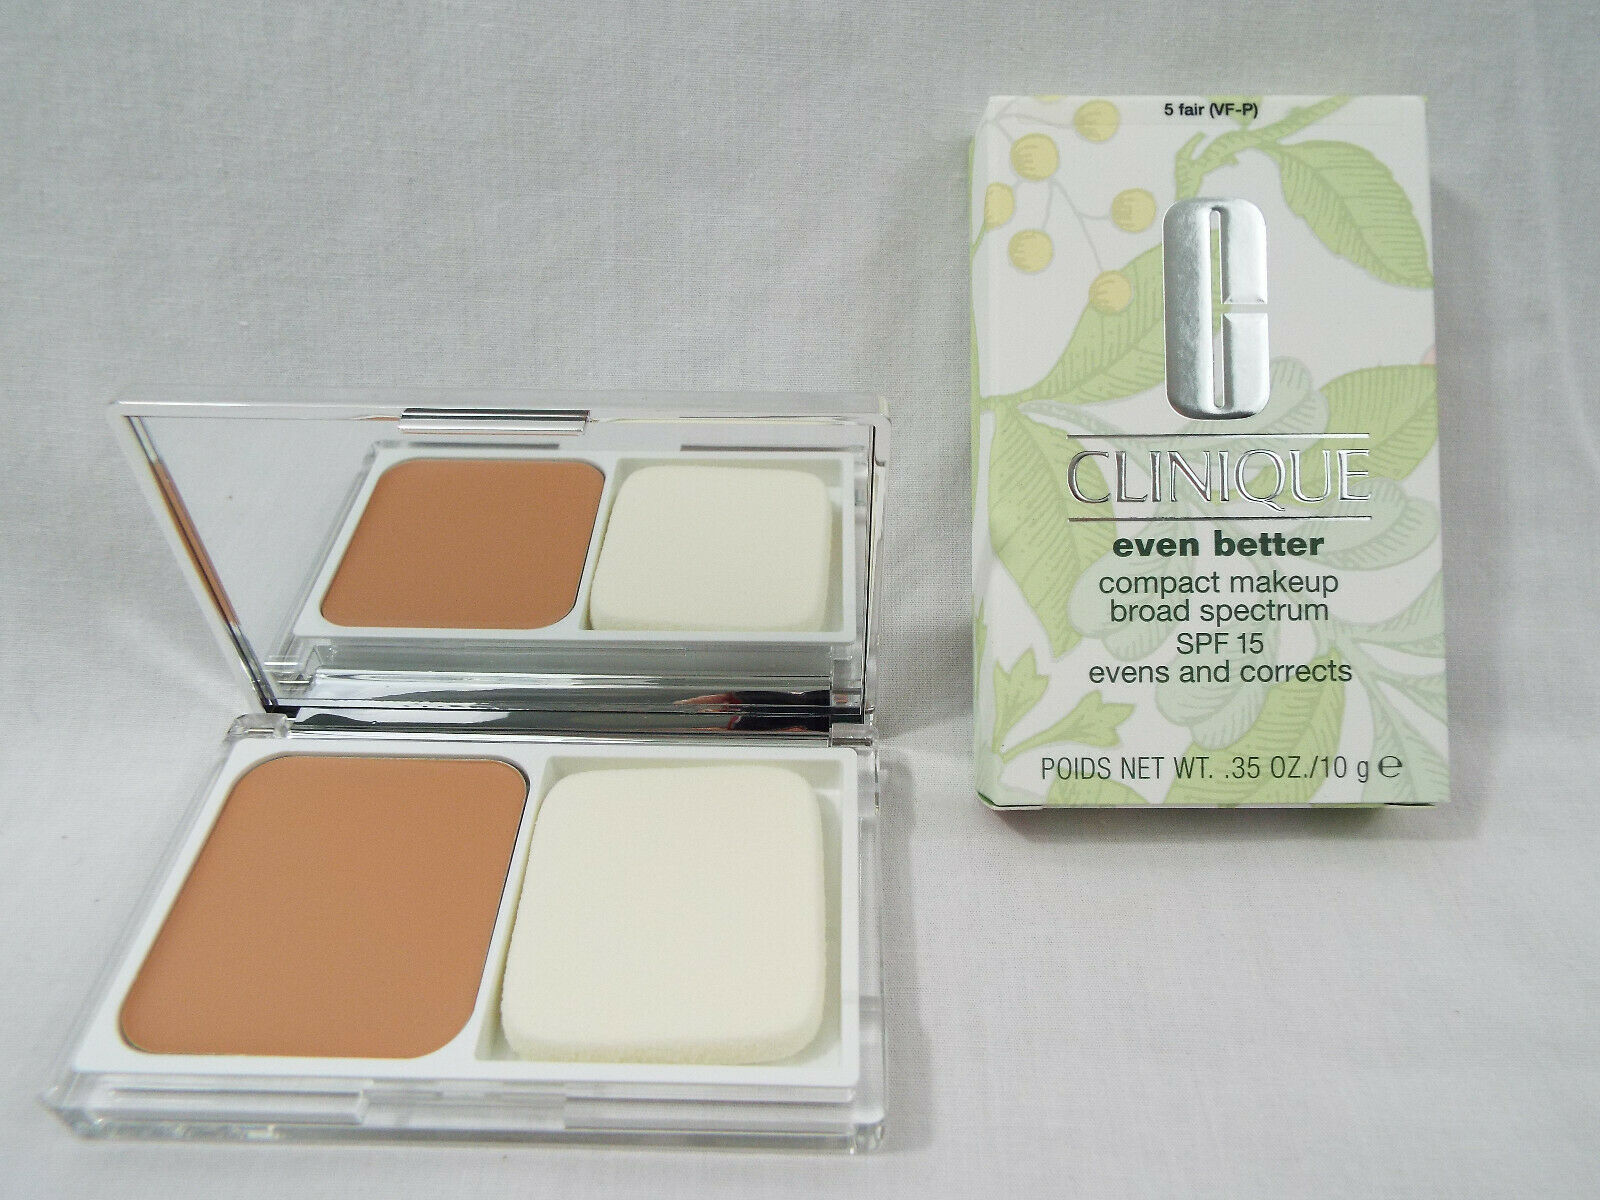 Primary image for Clinique Even Better Compact Makeup SPF15 in Fair 5 VF-P